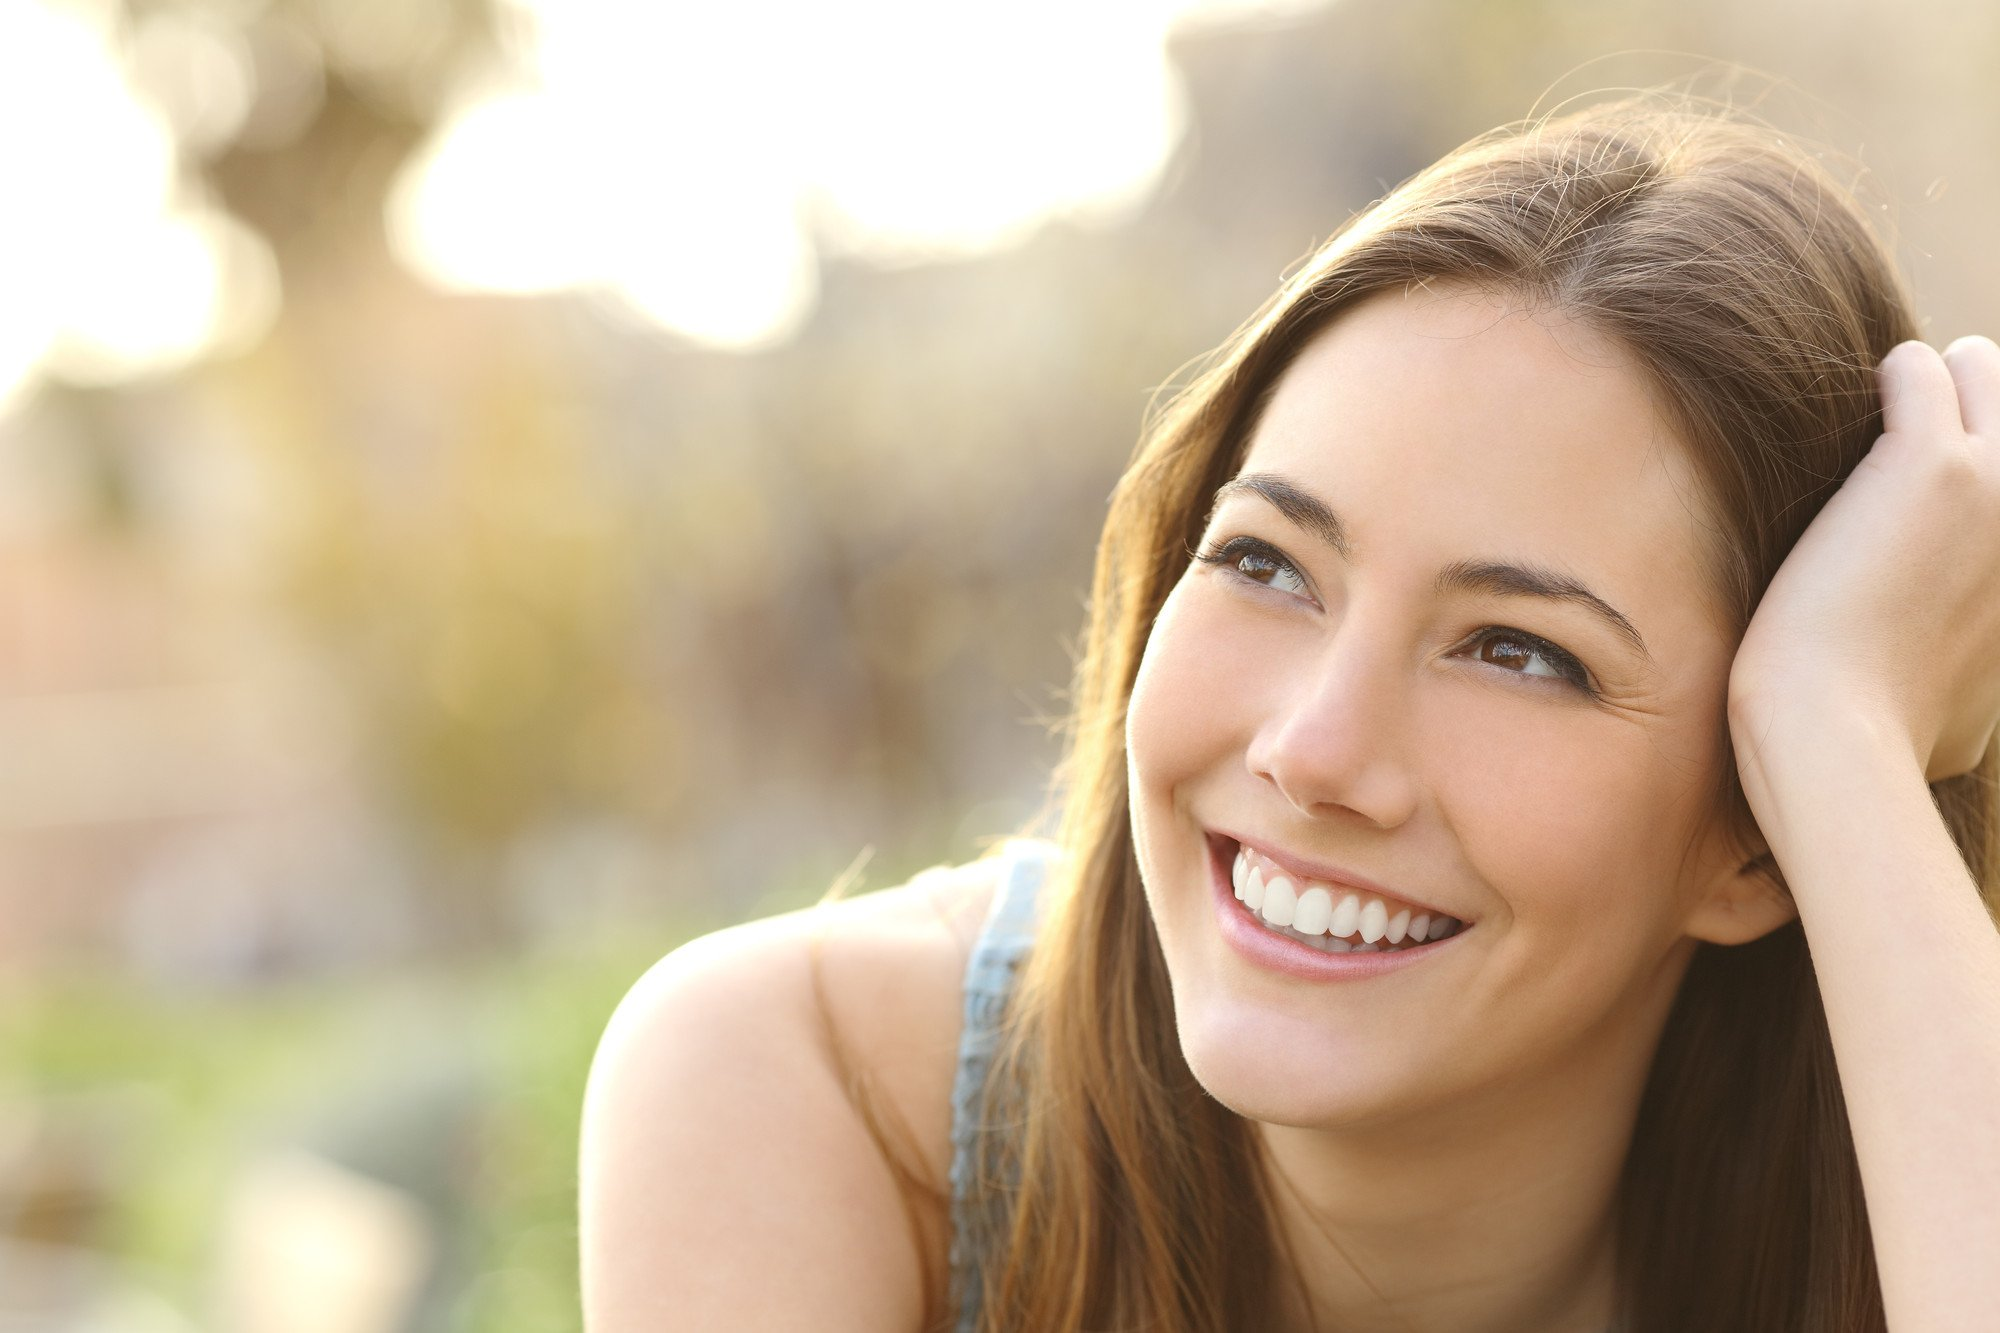 A girl smiling